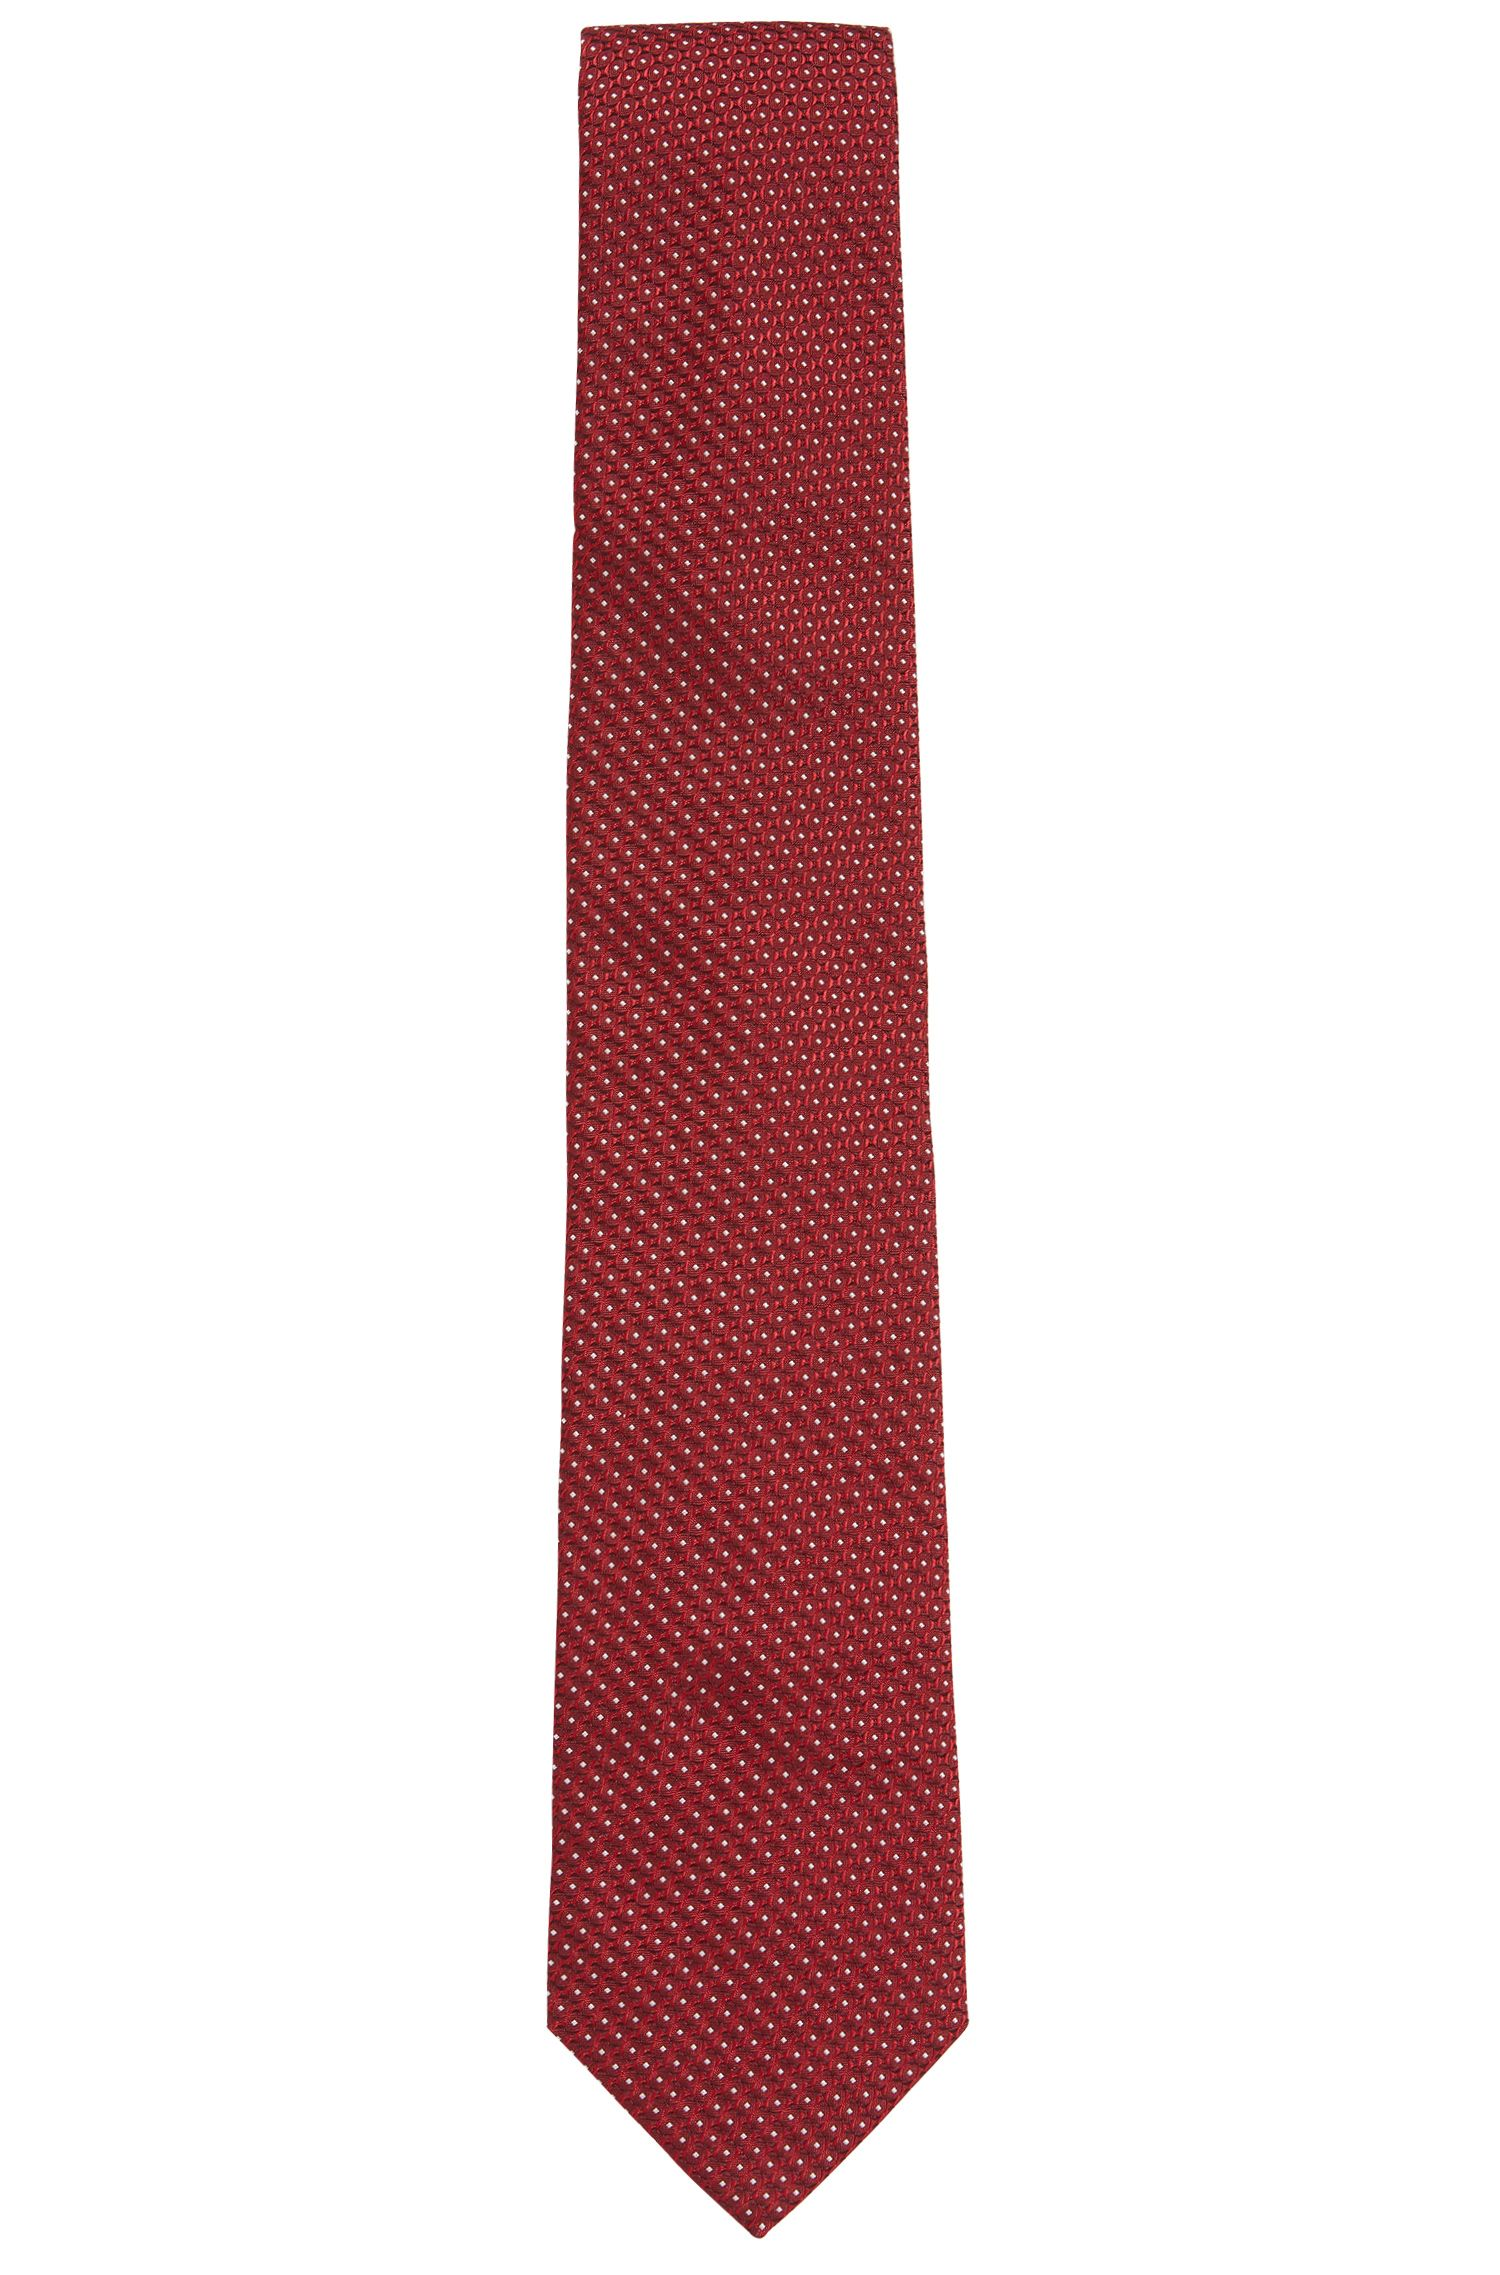 Patterned Italian Silk Tie